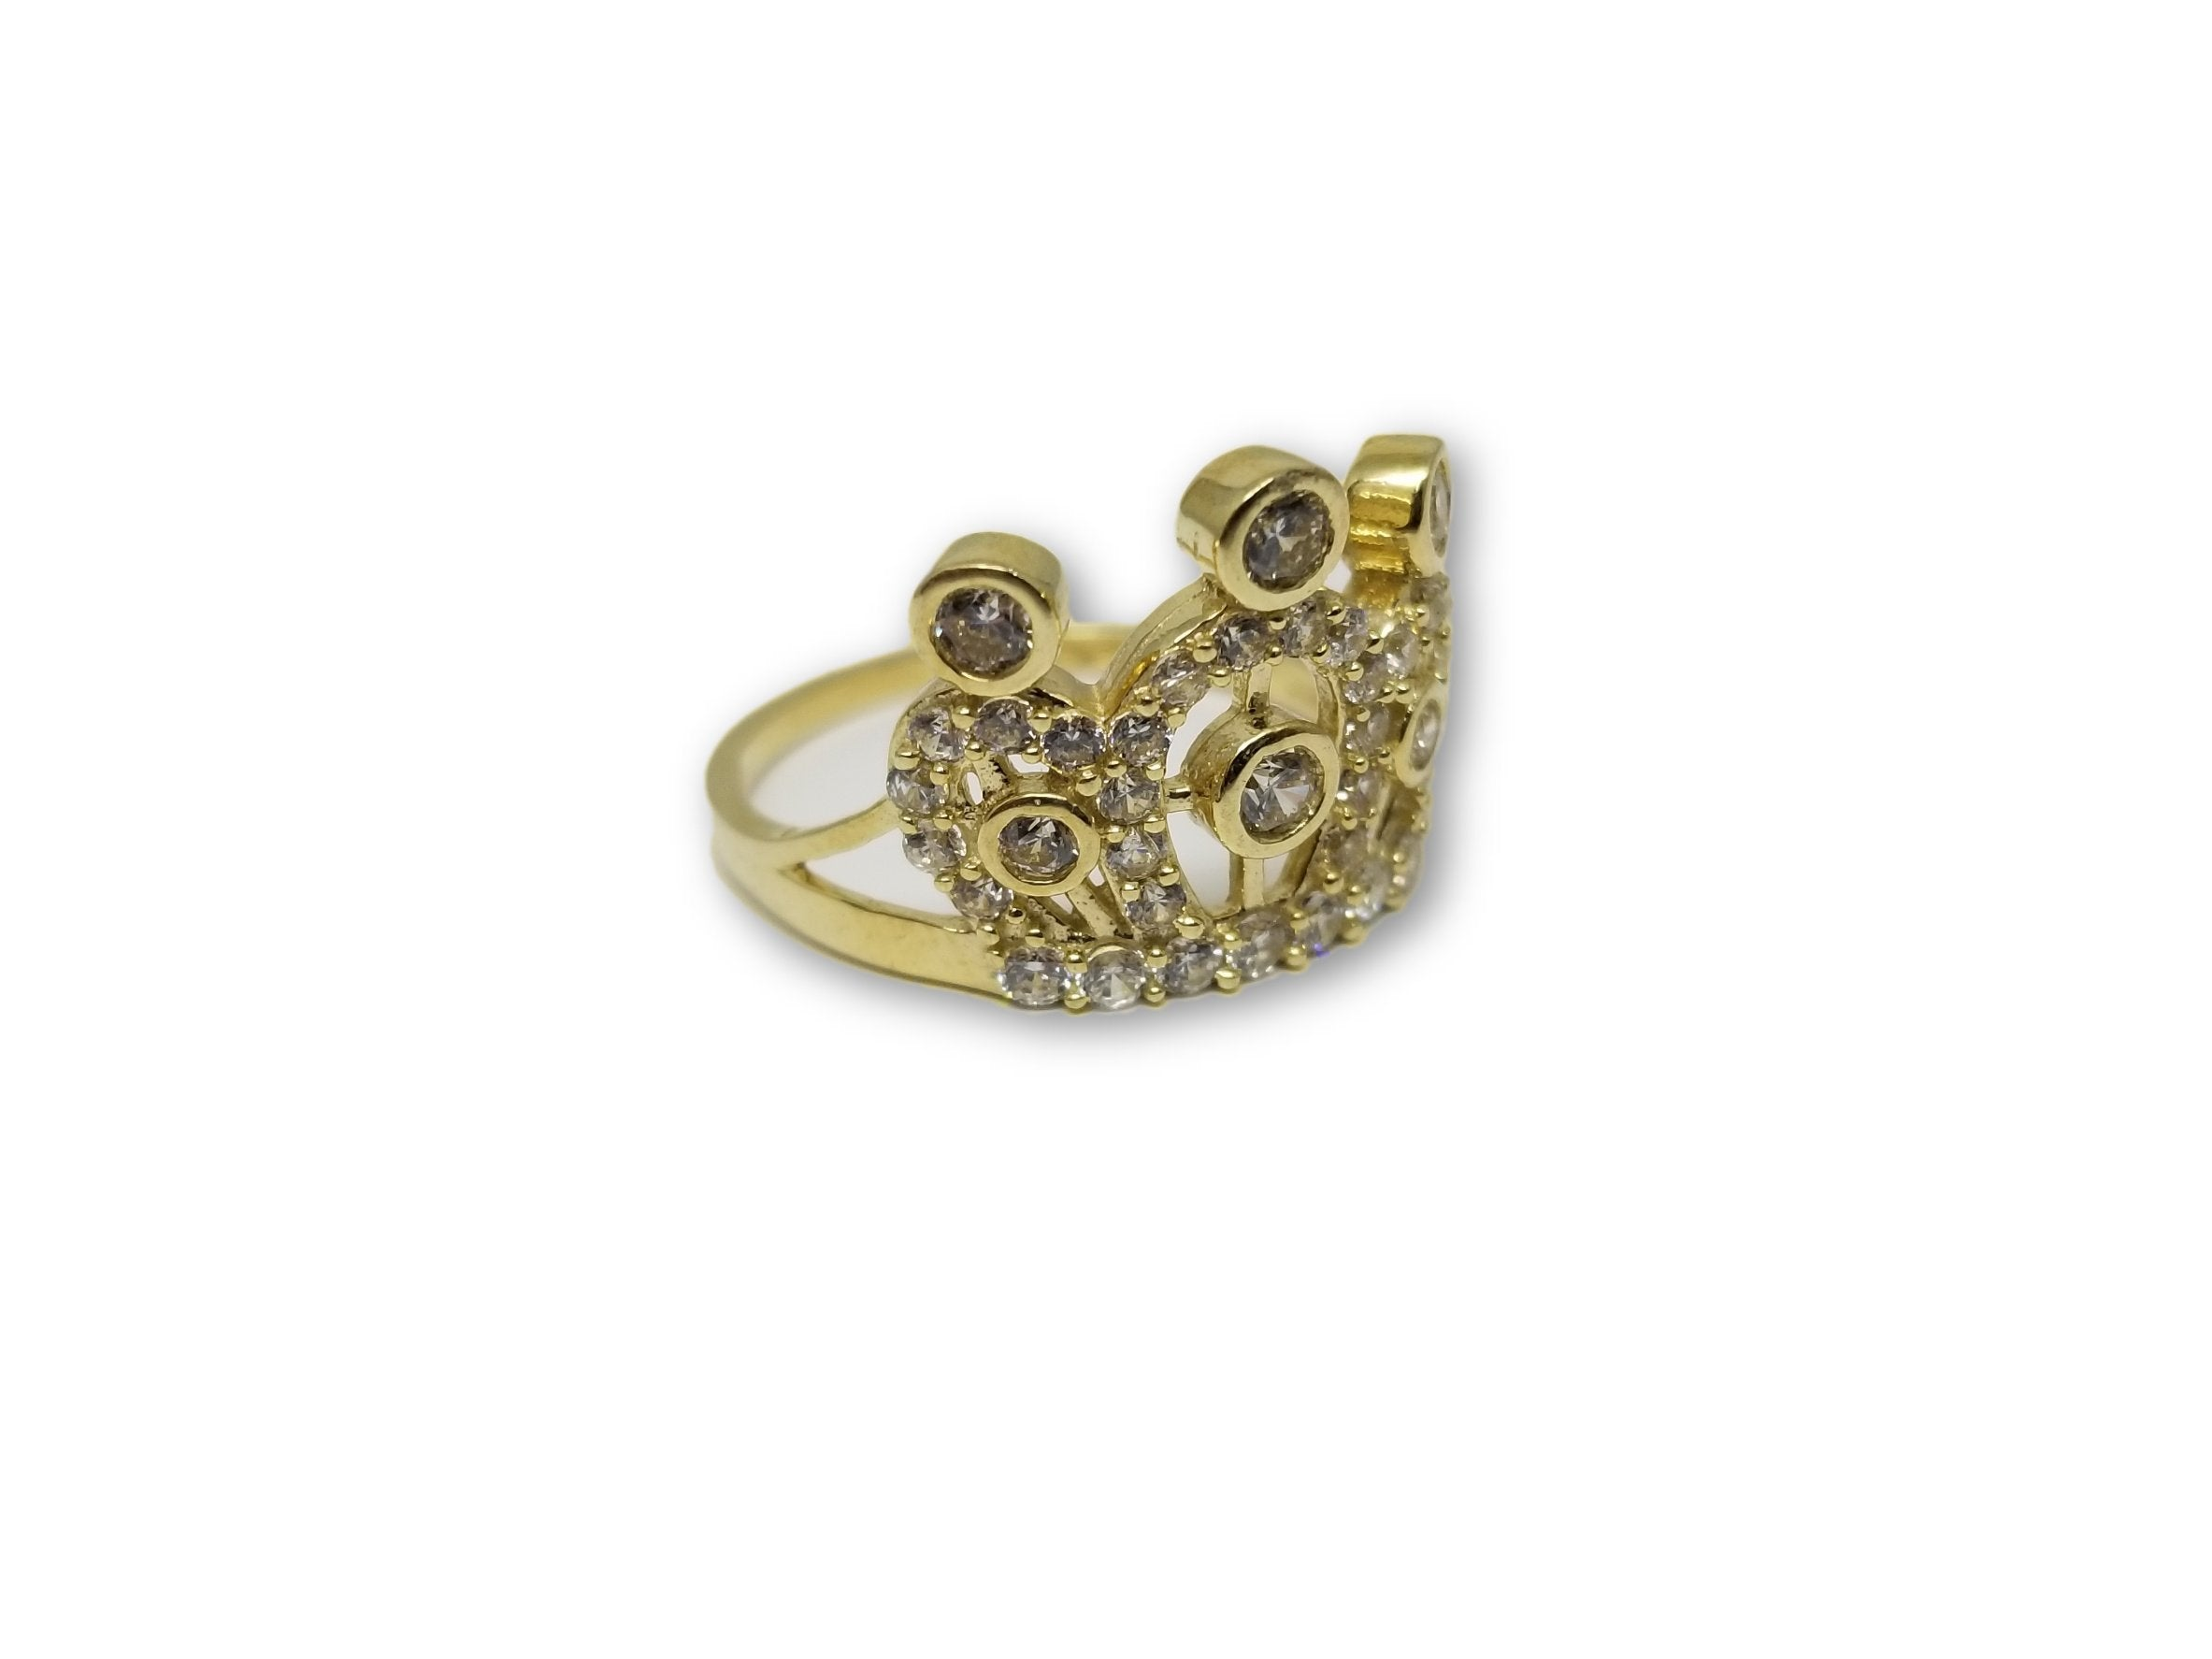 Bague Princessa en or jaune 10 karat - orquebec